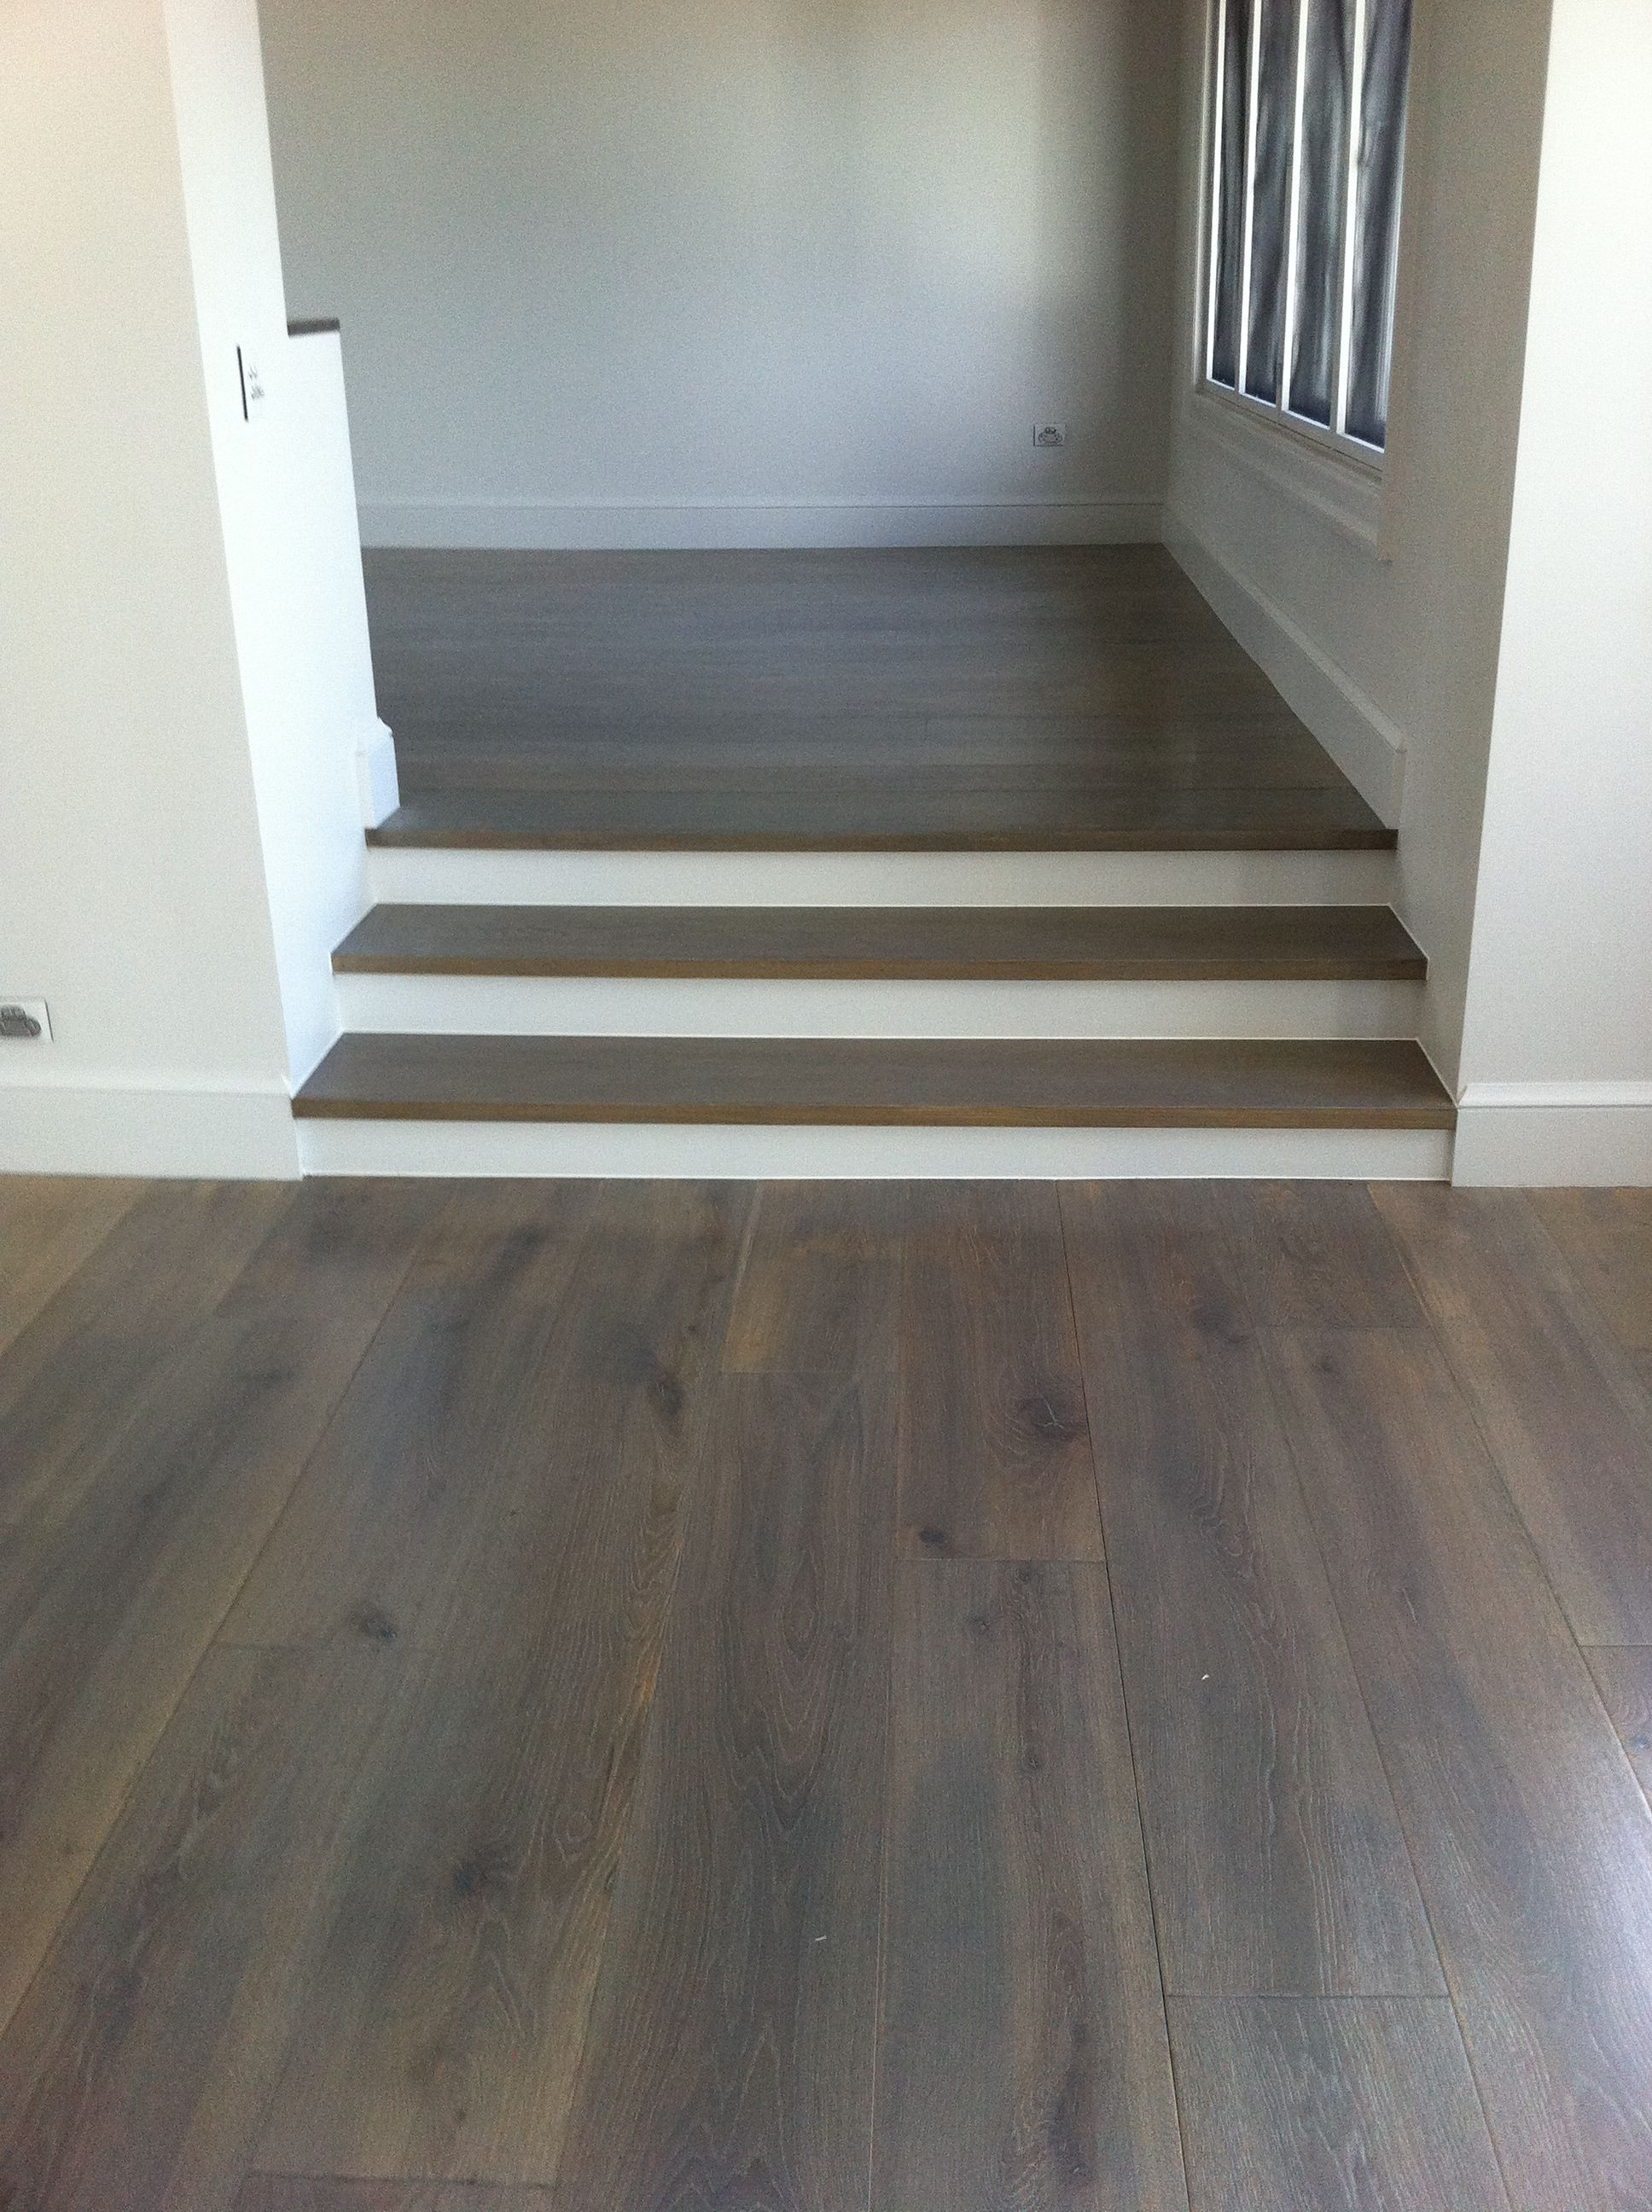 American White Oak Solid Floor Grey Stain In 2020 Wood Floor Stain Colors Hardwood Floor Colors Oak Floor Stains